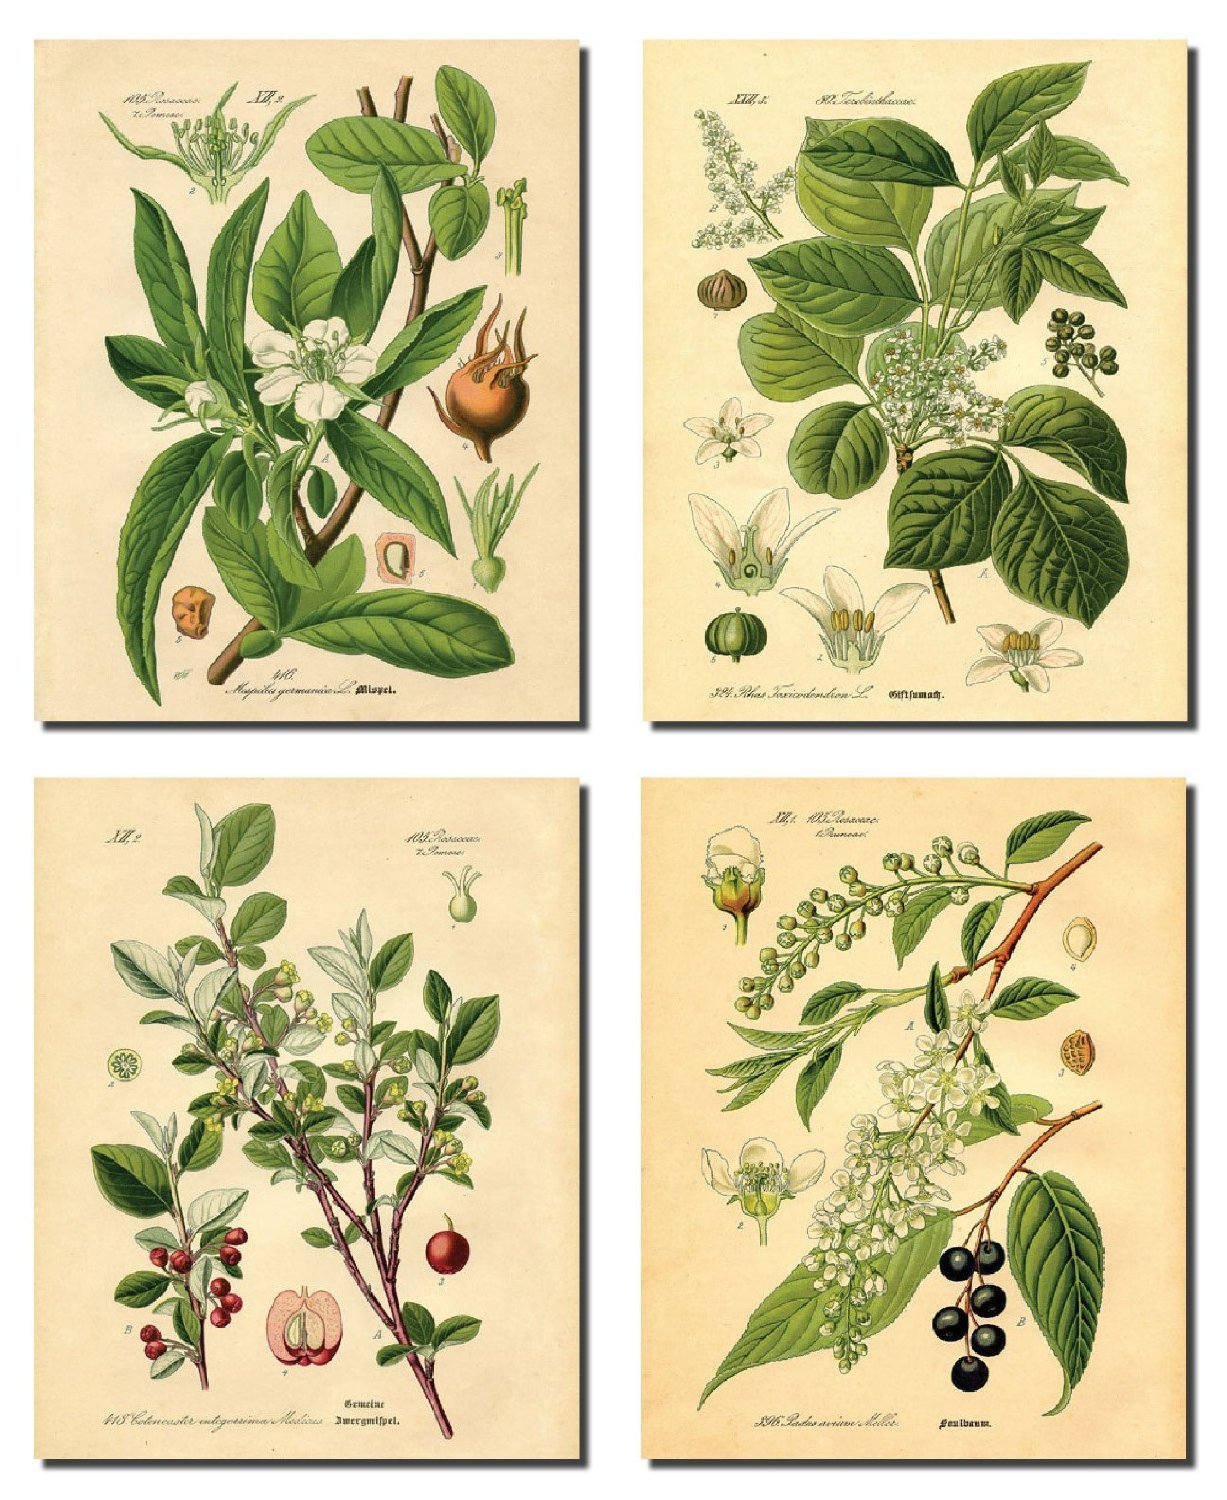 Gango Home Decor Popular Old-Fashioned Plant Botanical Prints; Four 8x10in Unframed Paper Posters by Gango Home Decor